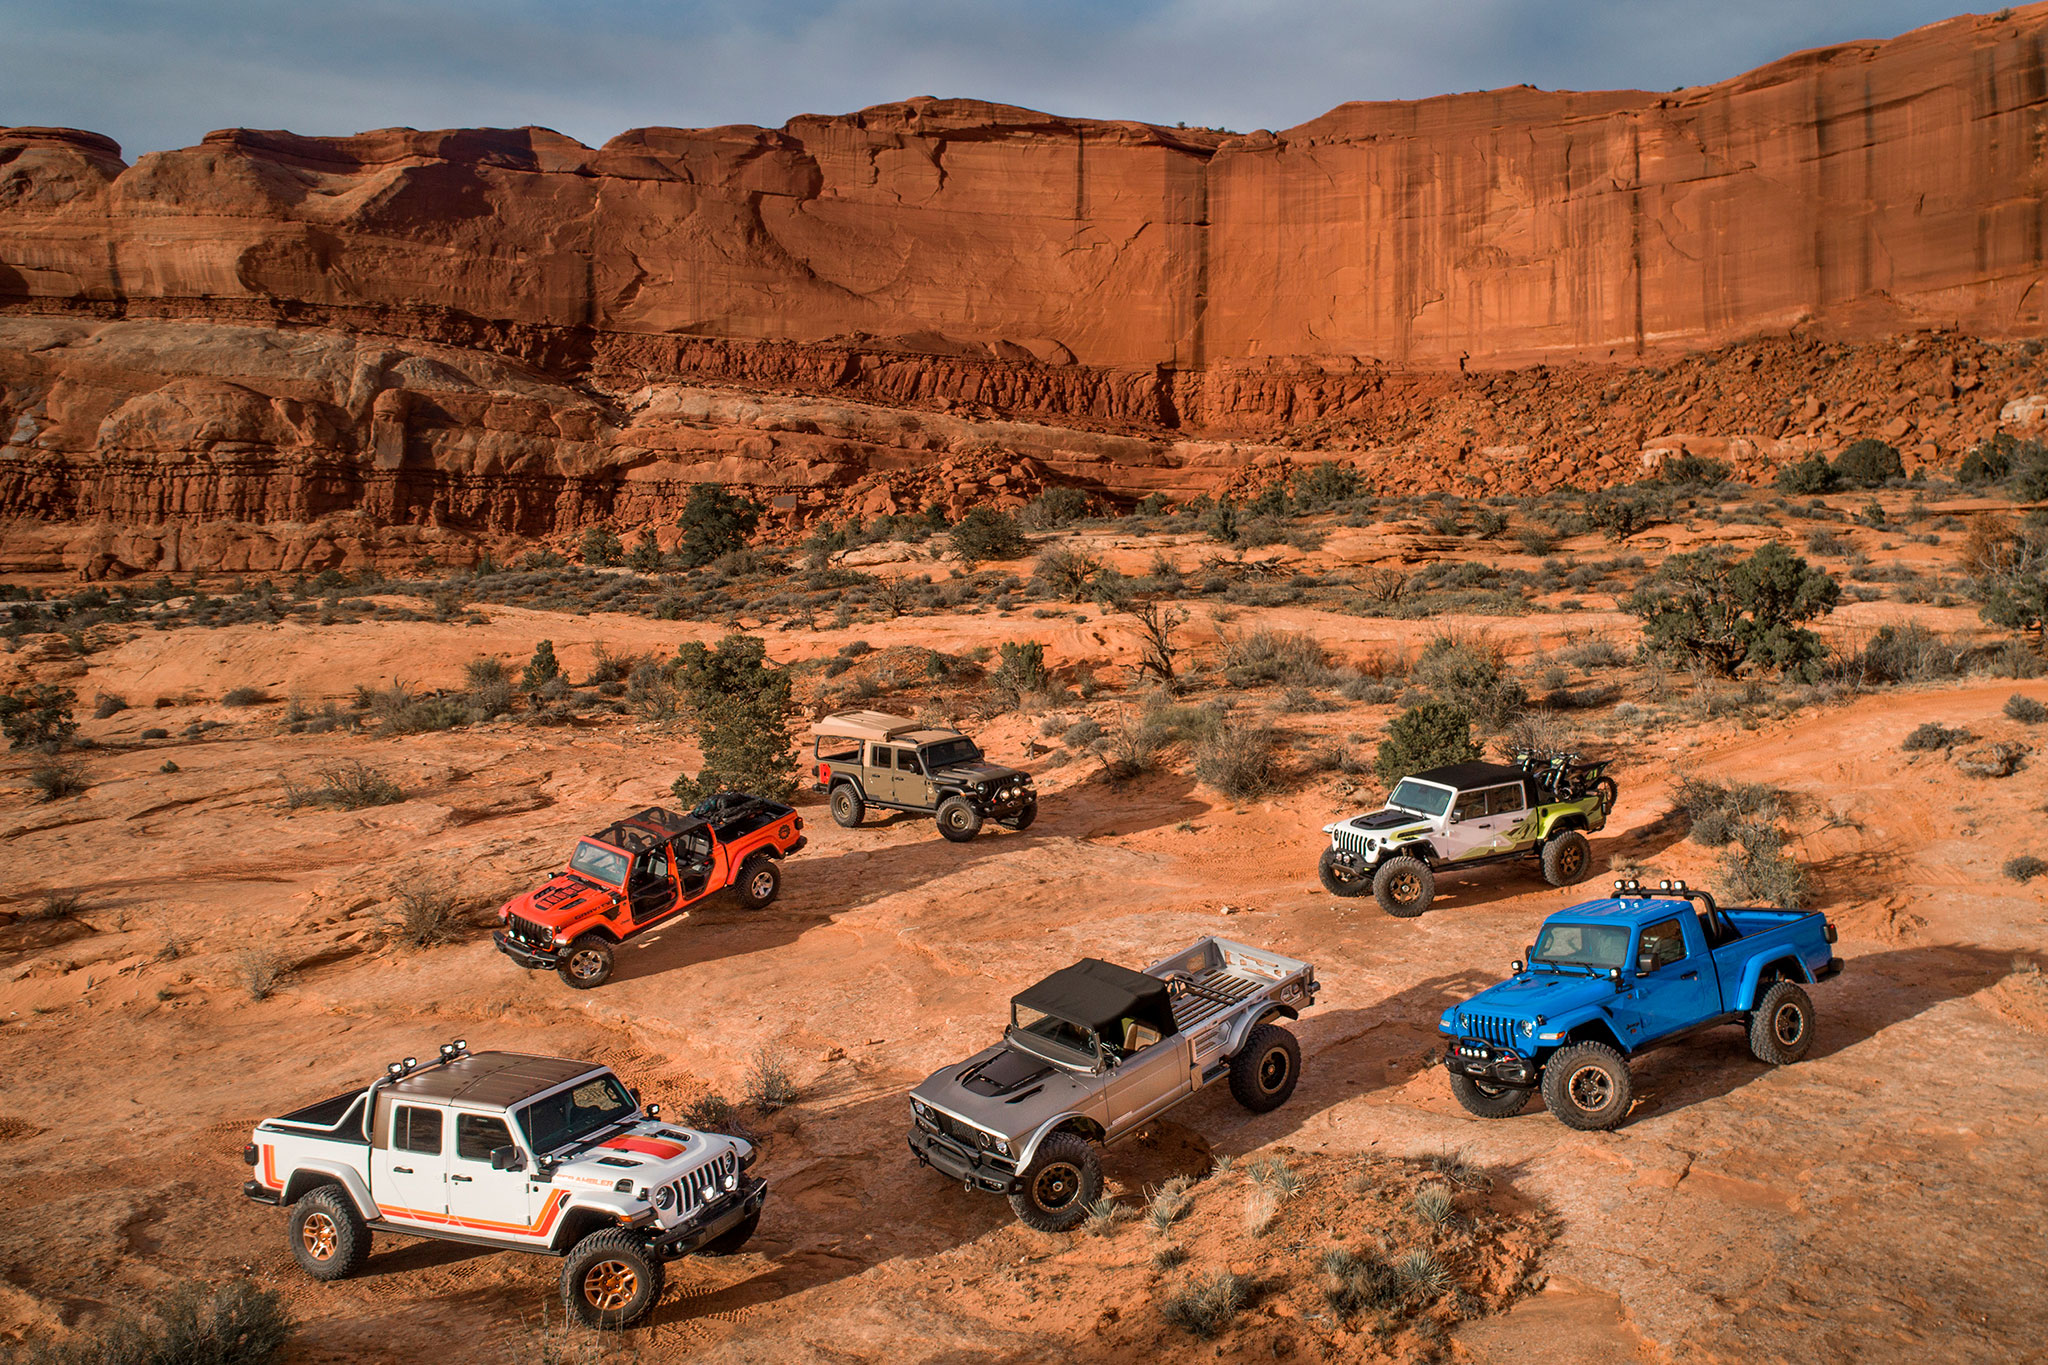 2019 Jeep JT Scrambler Jeep Five-Quarter Jeep J6 Jeep Gravity Jeep Wayout Jeep Flatbill - Moab Easter Jeep Safari.